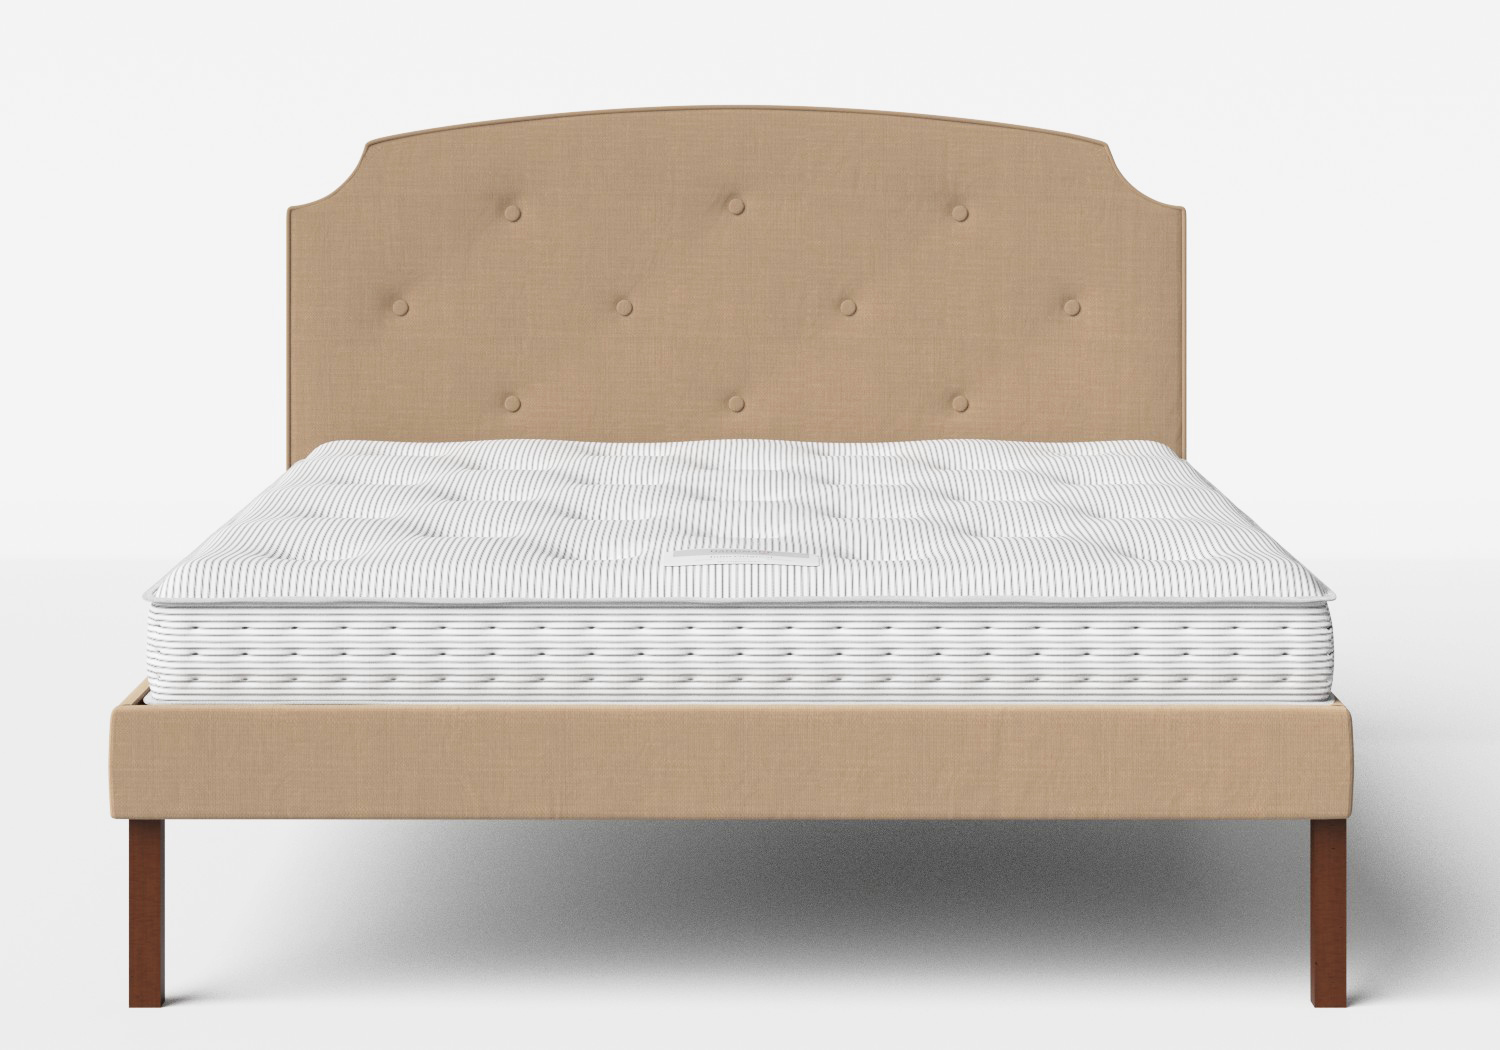 Kobe Upholstered Bed in Straw fabric with buttoning shown with Juno 1 mattress